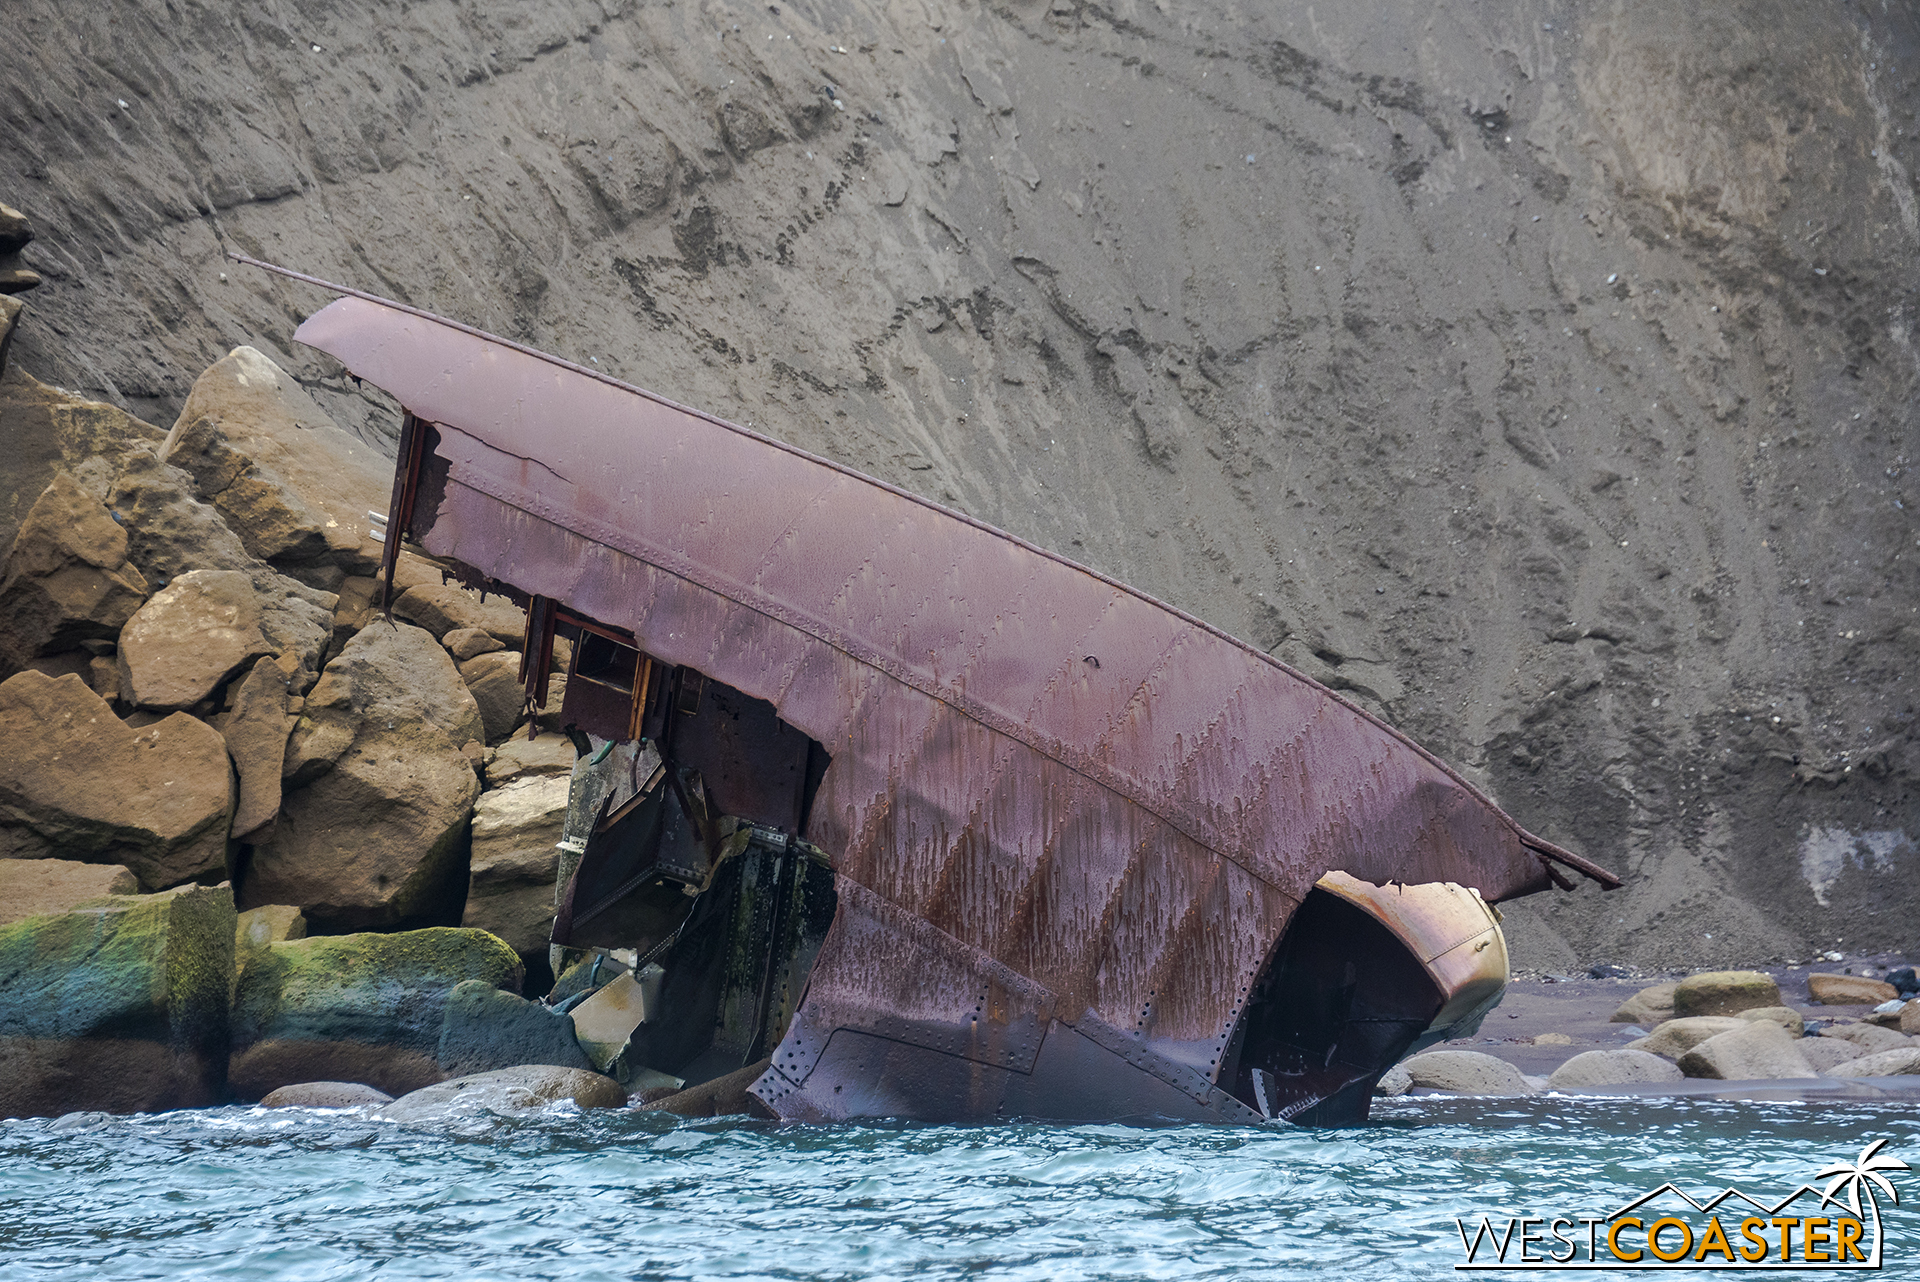 Close-up of remnants of the shipwreck.